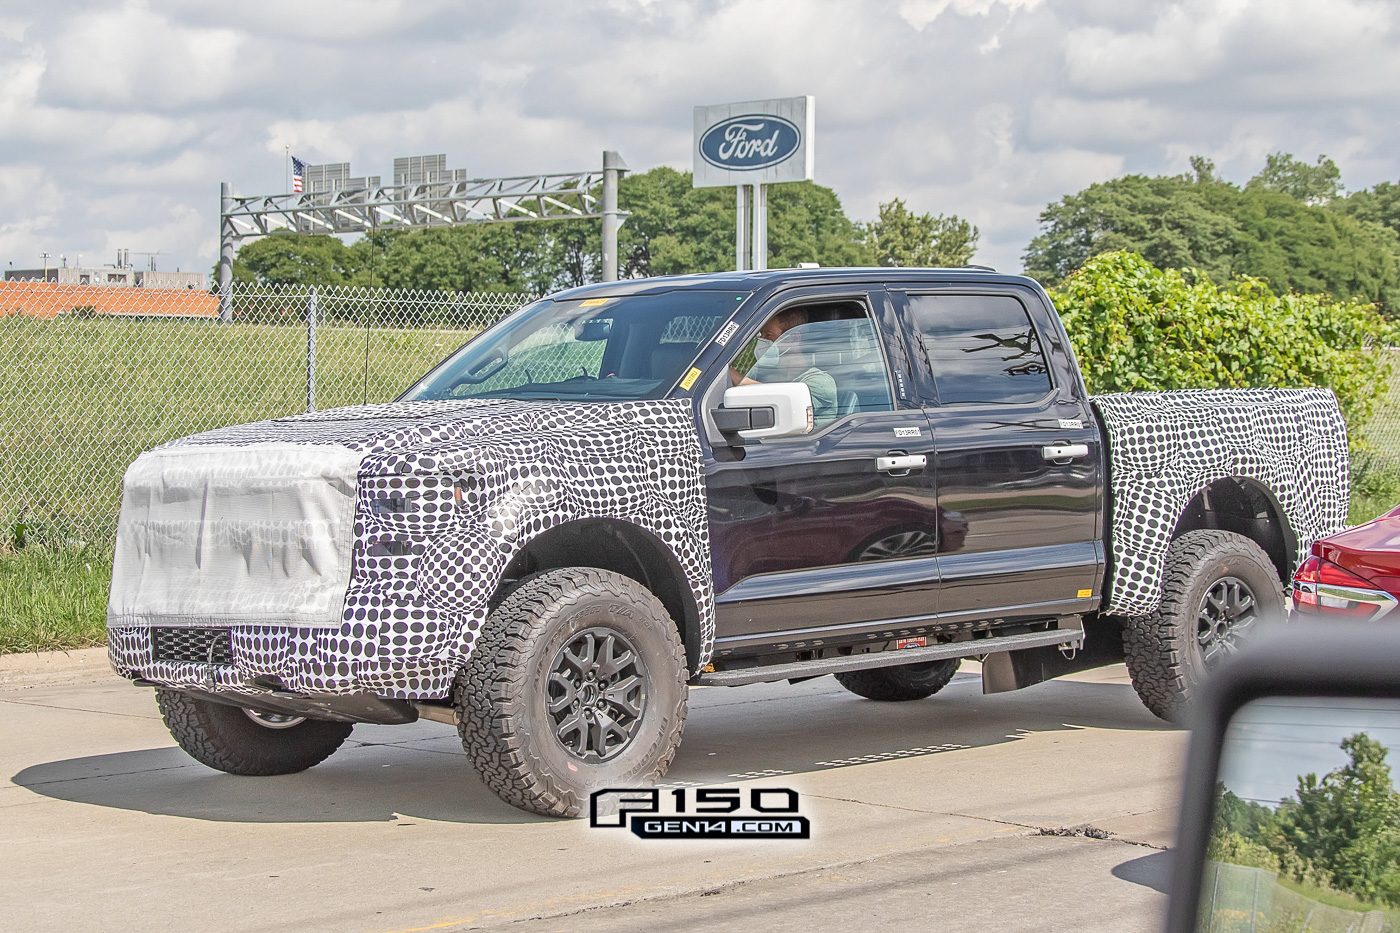 2021-F-150-Raptor-Prototype-Suspension-Spied-7.jpg